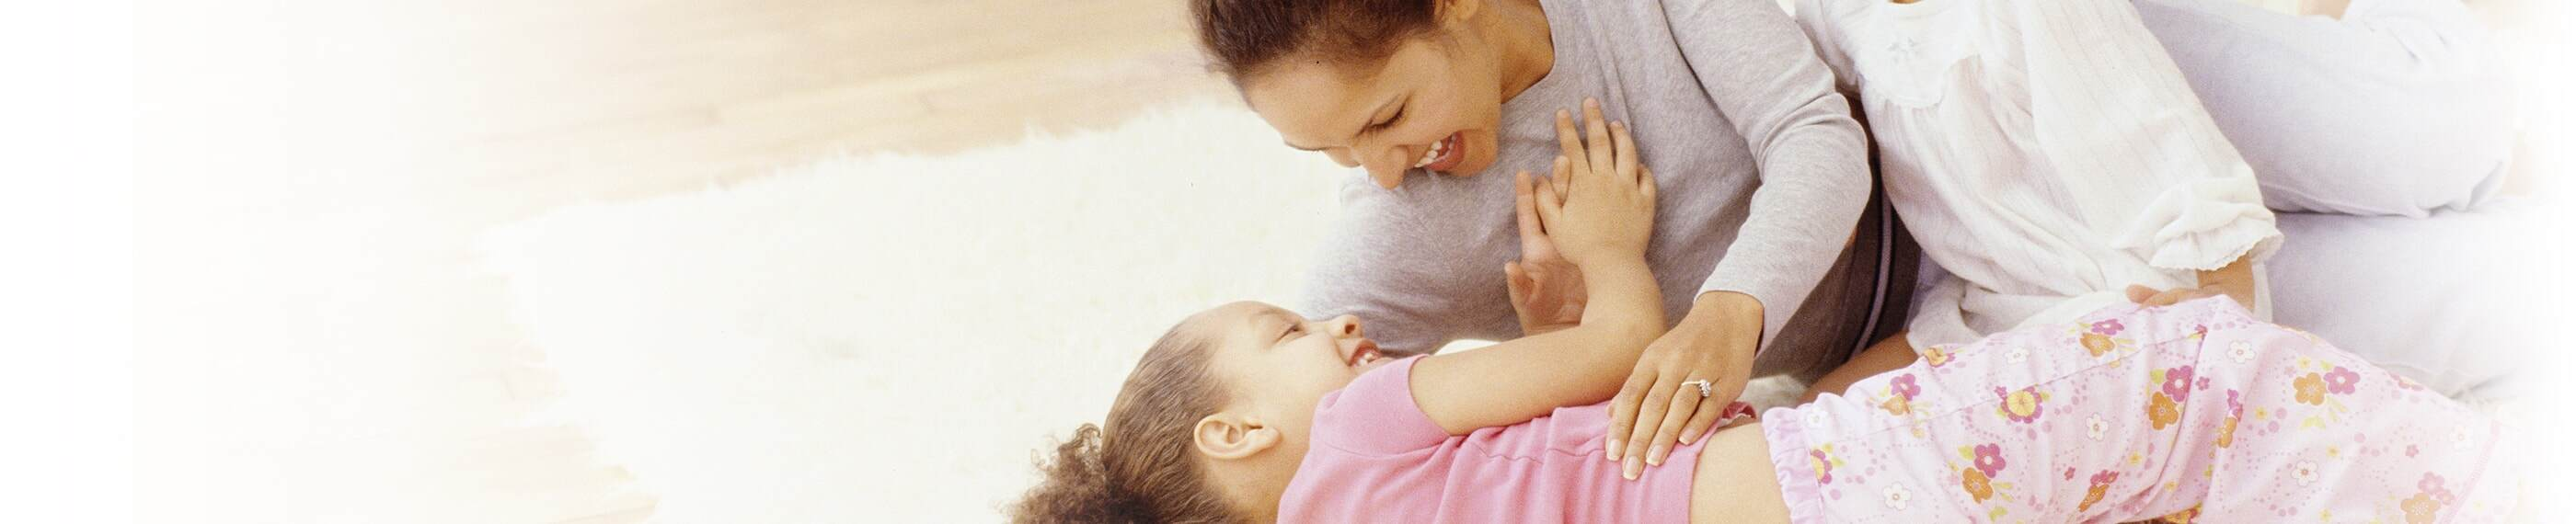 Mother and daughter can get back to playing together thanks to MOTRIN® pain relief